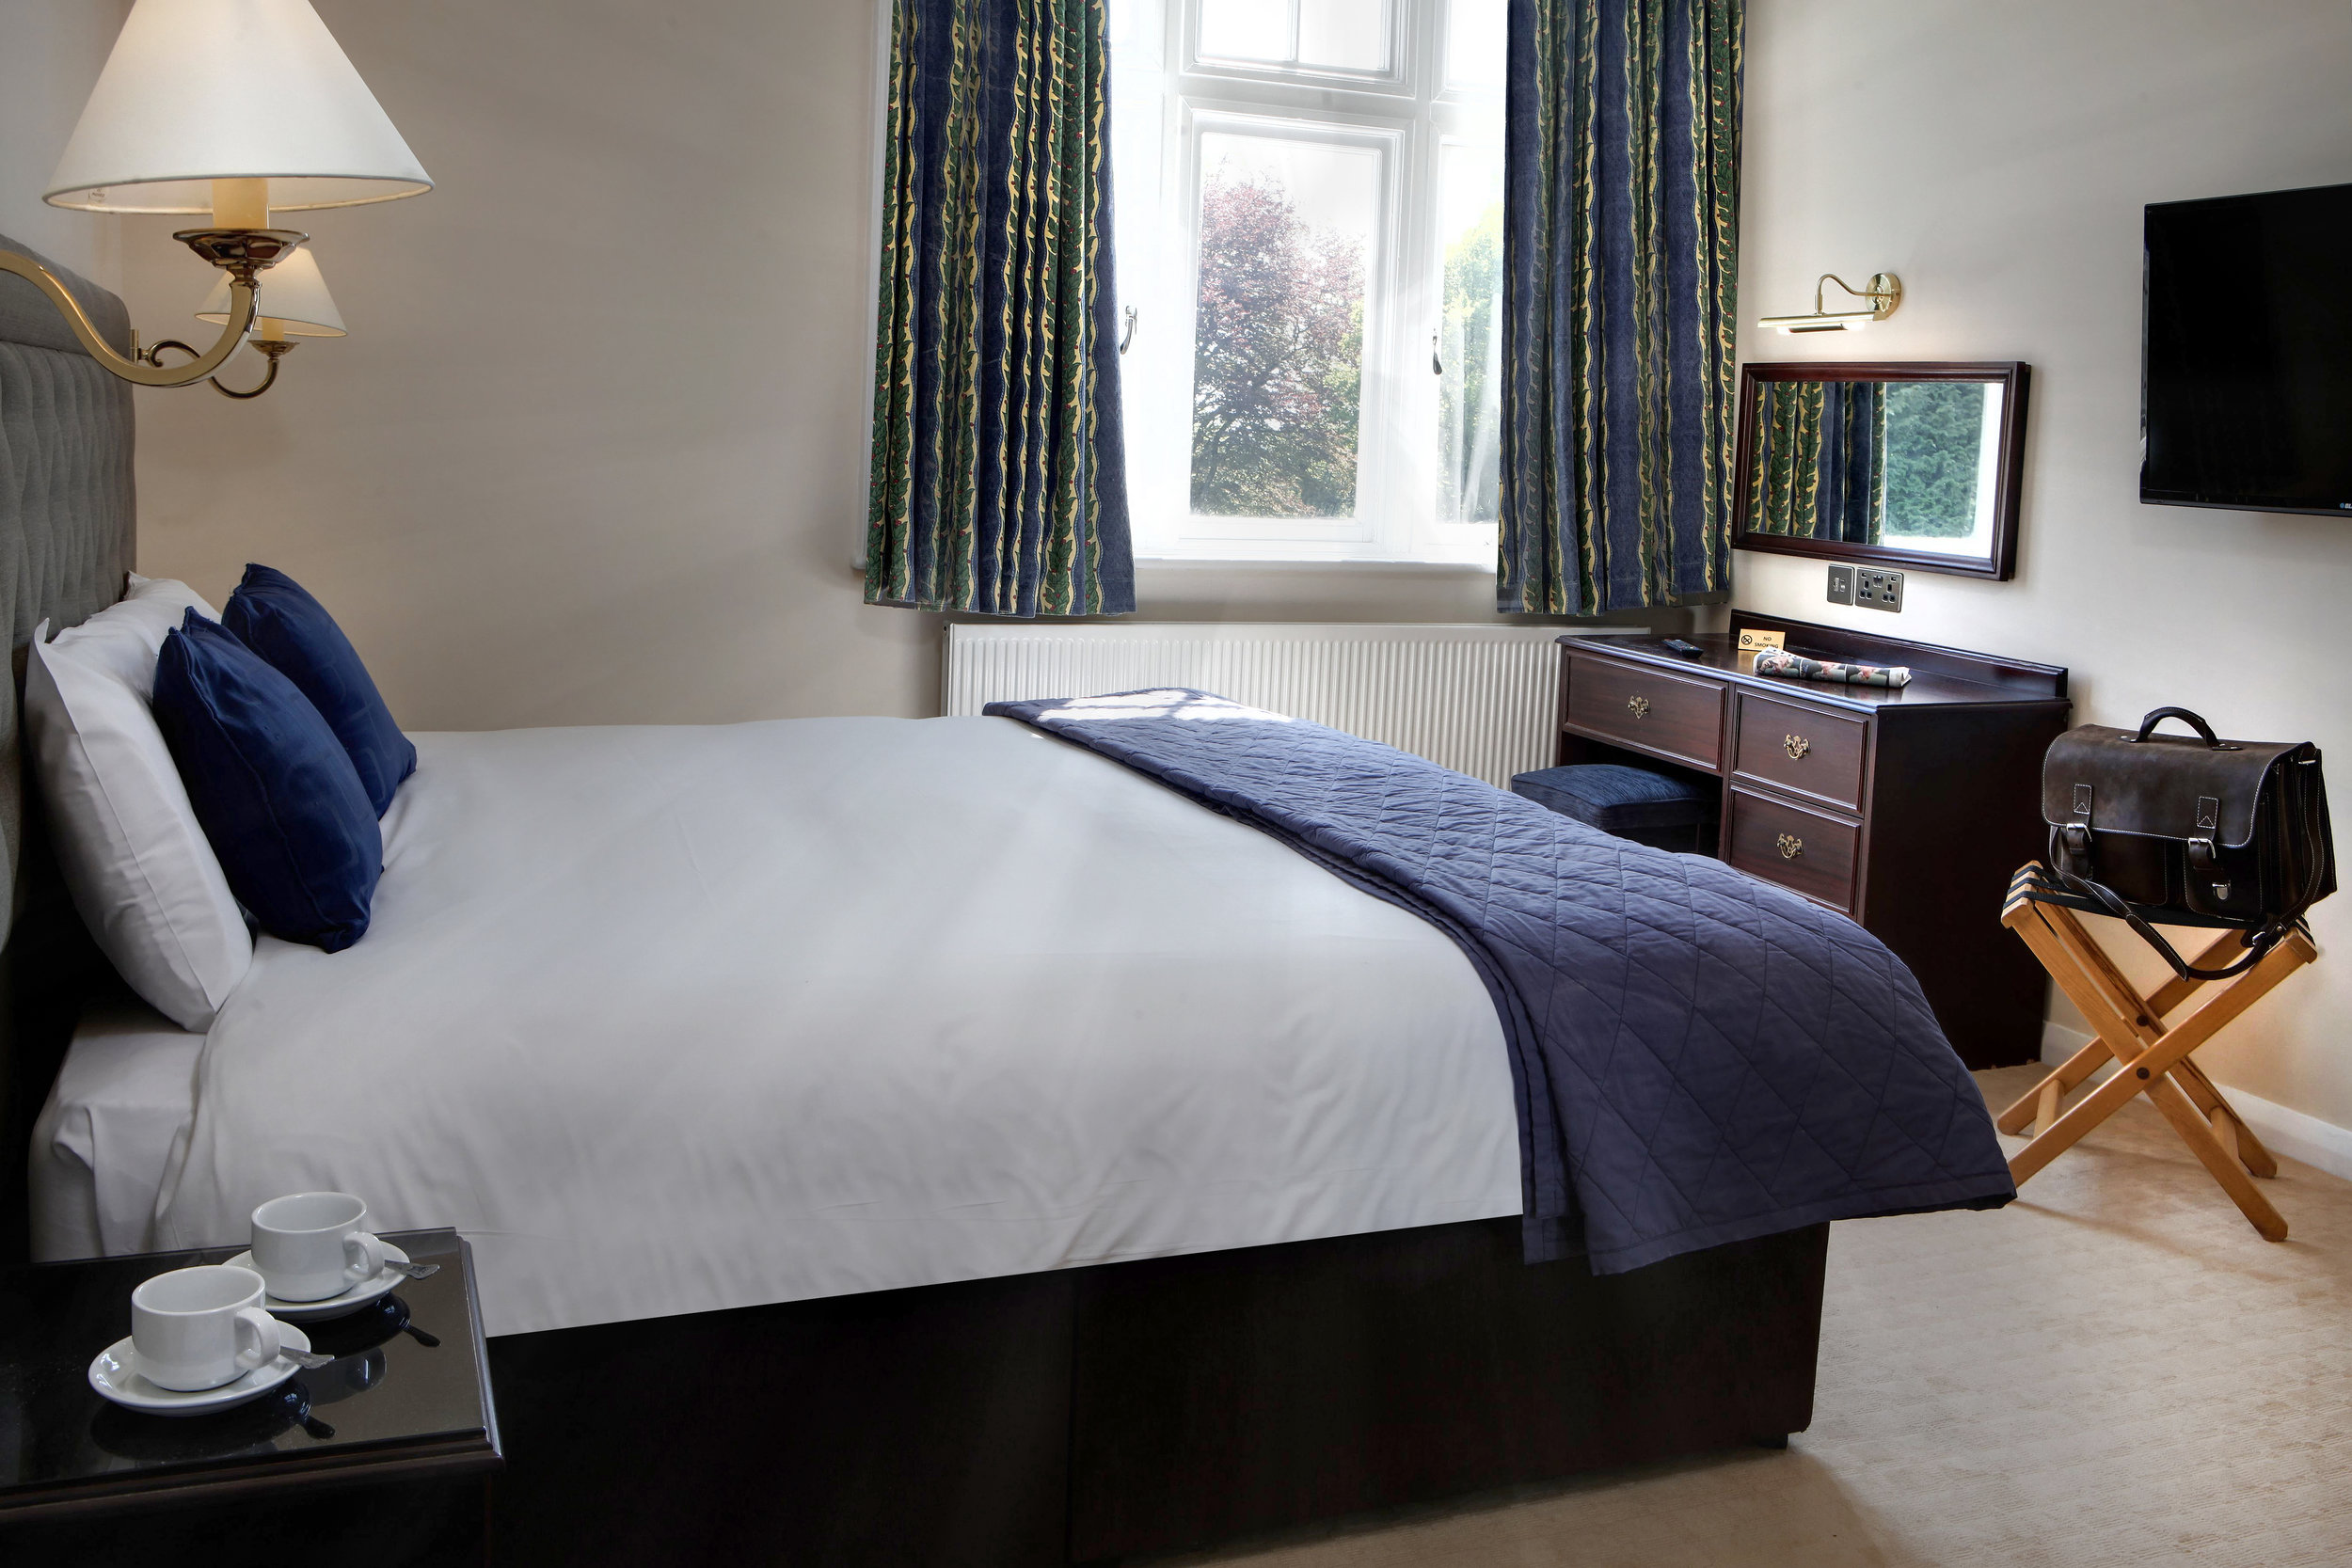 Double room in a classic style